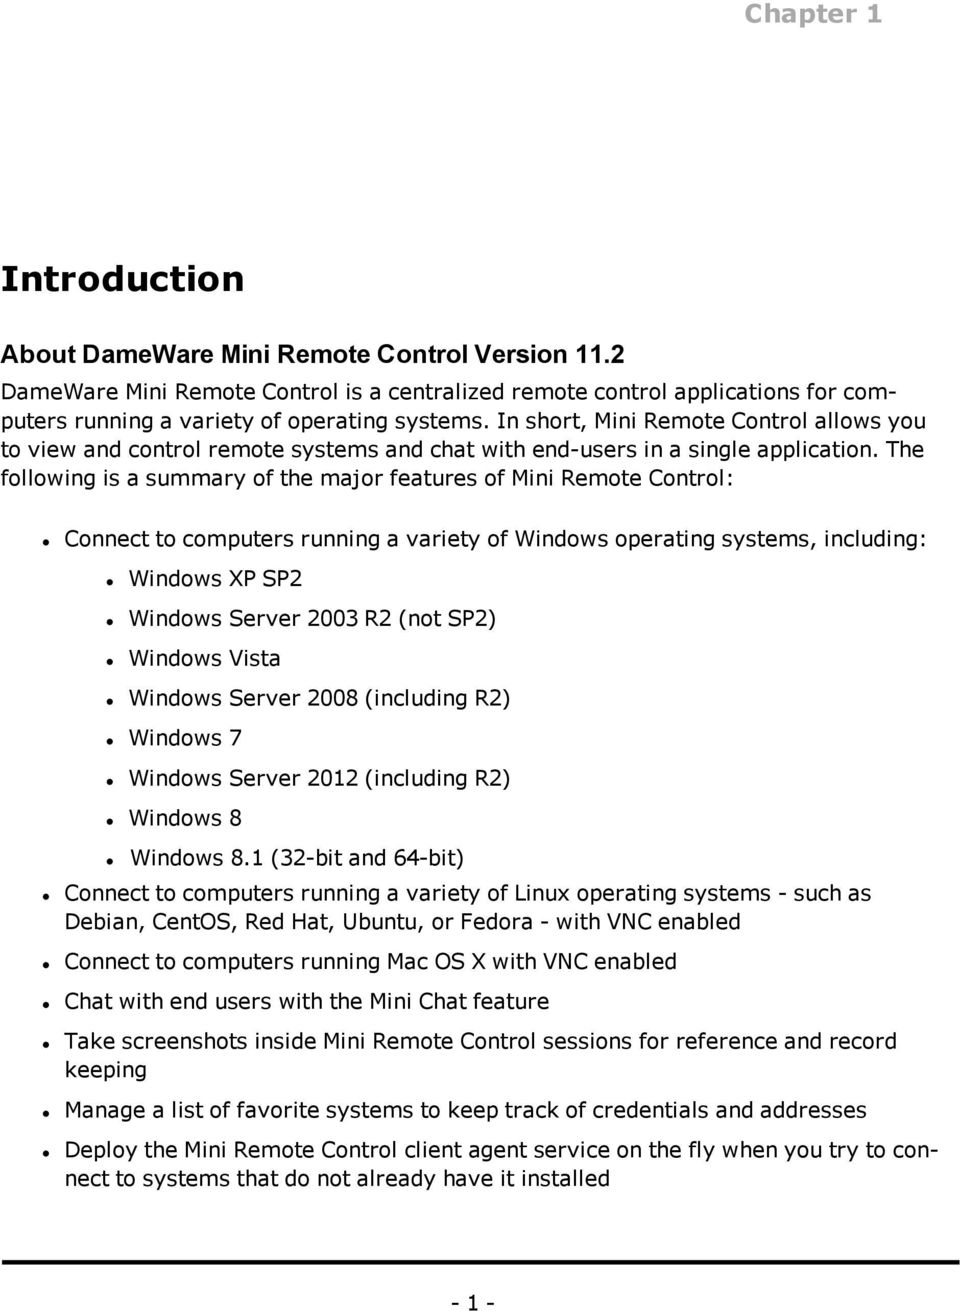 The following is a summary of the major features of Mini Remote Control: Connect to computers running a variety of Windows operating systems, including: Windows XP SP2 Windows Server 2003 R2 (not